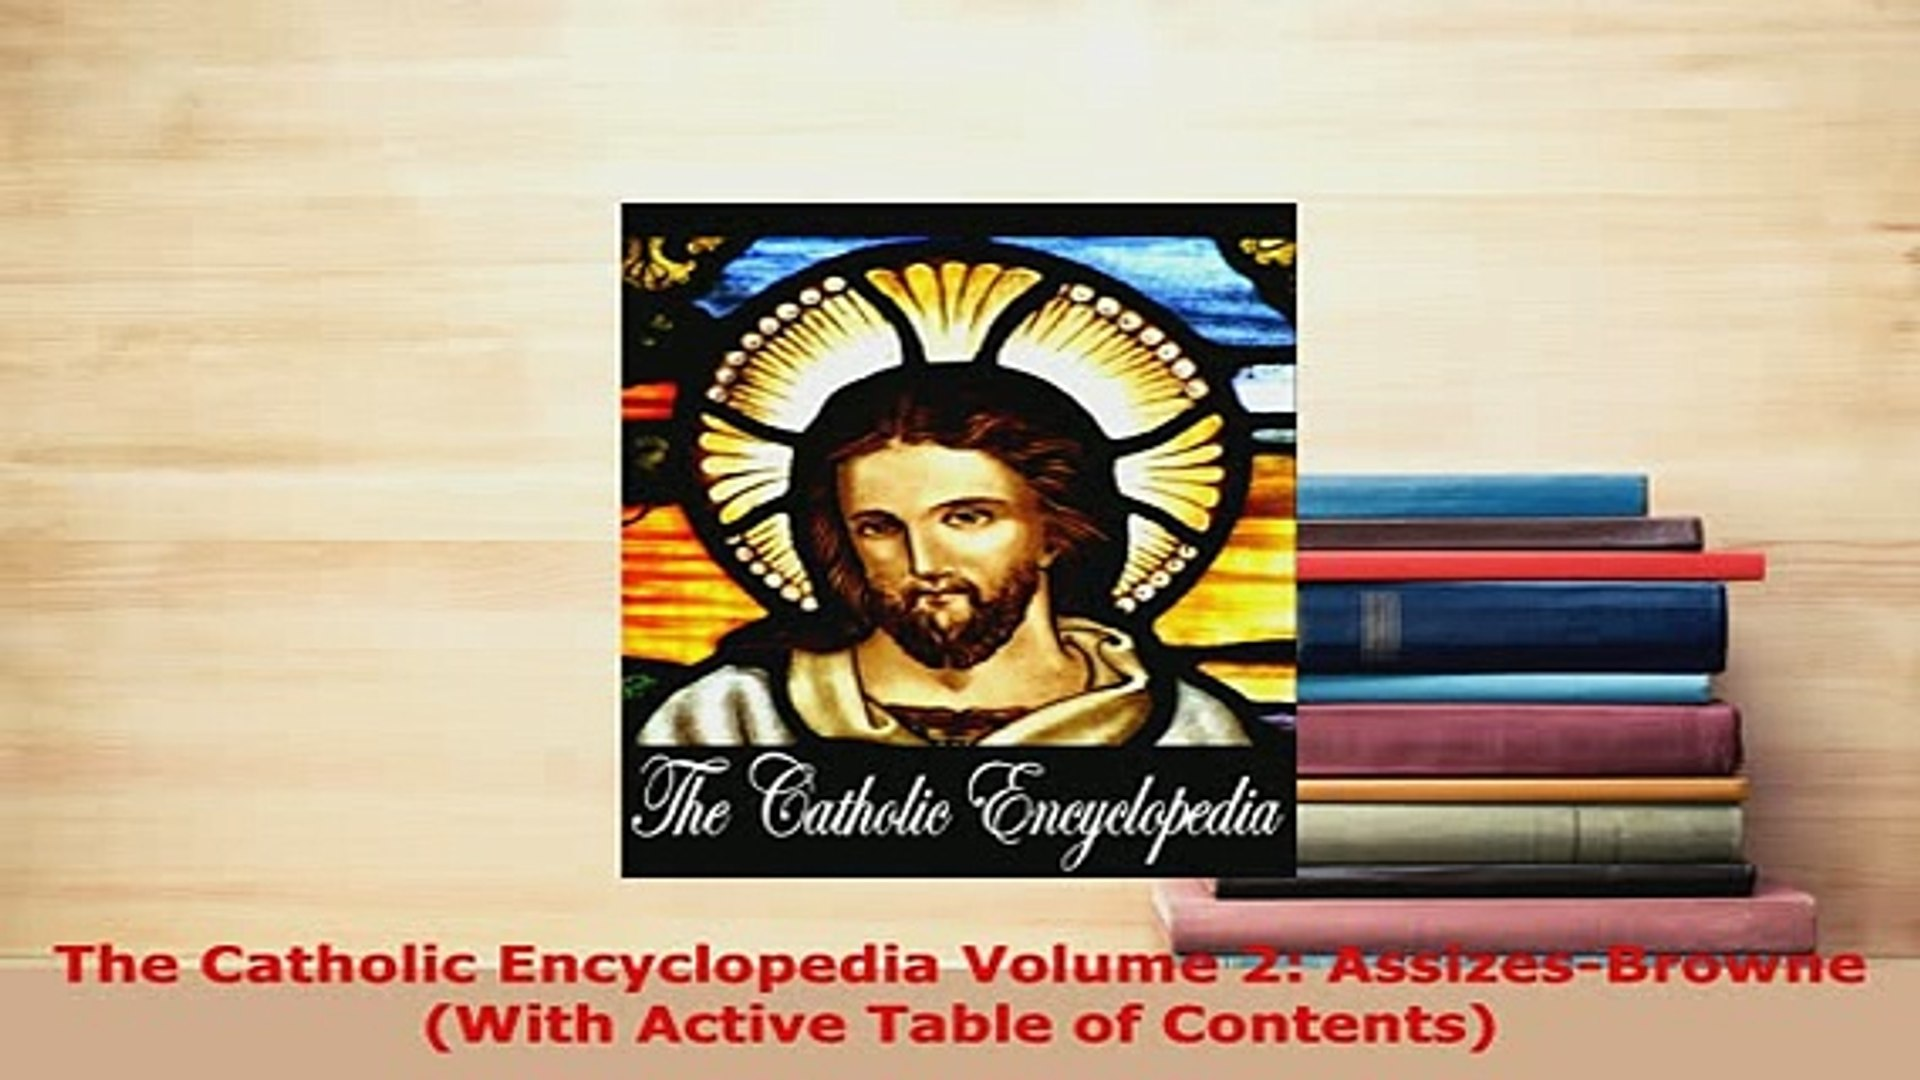 The Catholic Encyclopedia Volume 2: Assizes-Browne (With Active Table of Contents)